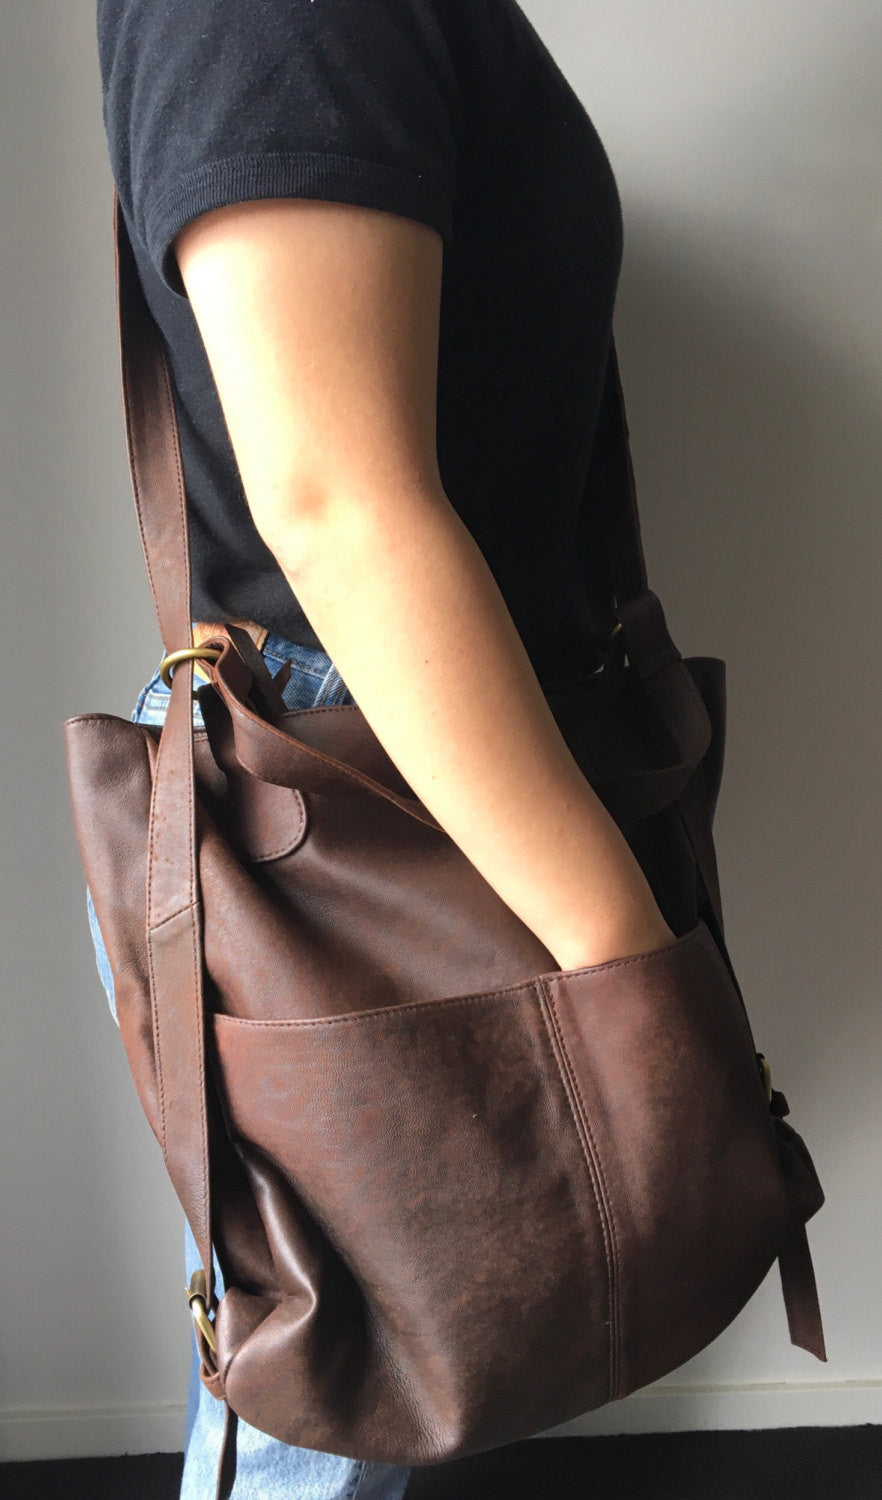 The Holster-Convertible backpack rucksack bag.